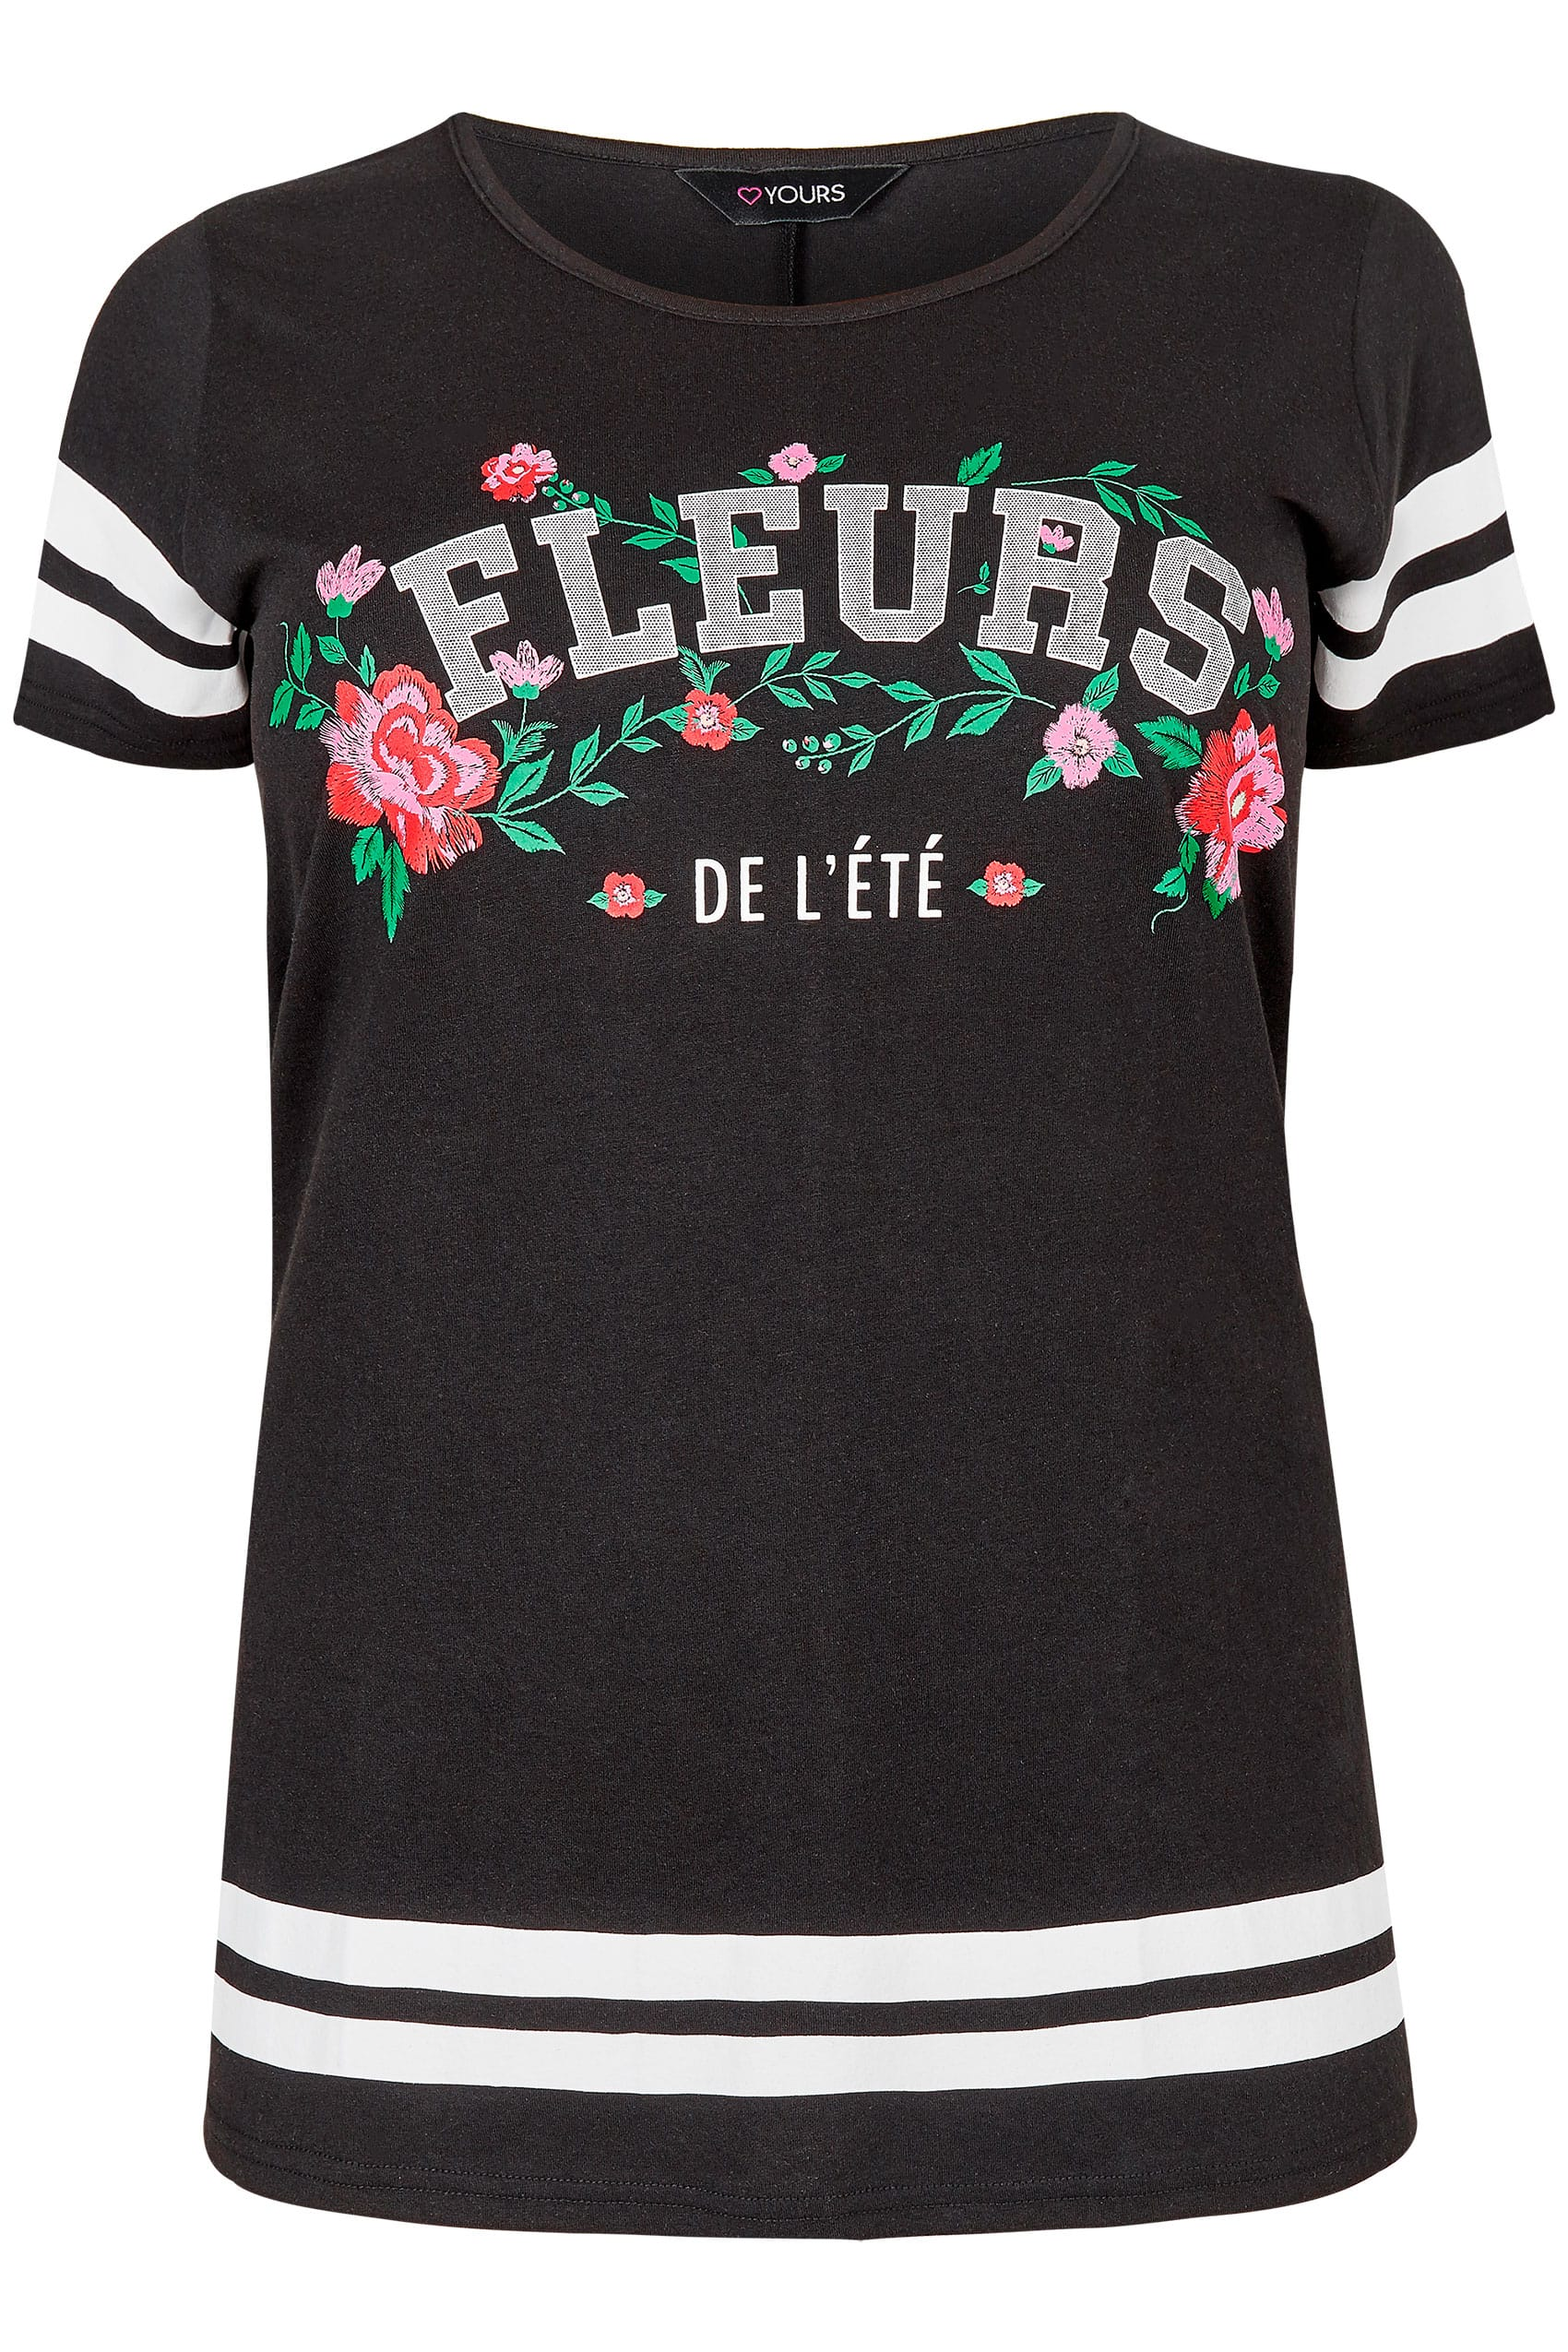 Zwarte fleurs t shirt met bloemenprint maten 44 64 for California privacy policy template